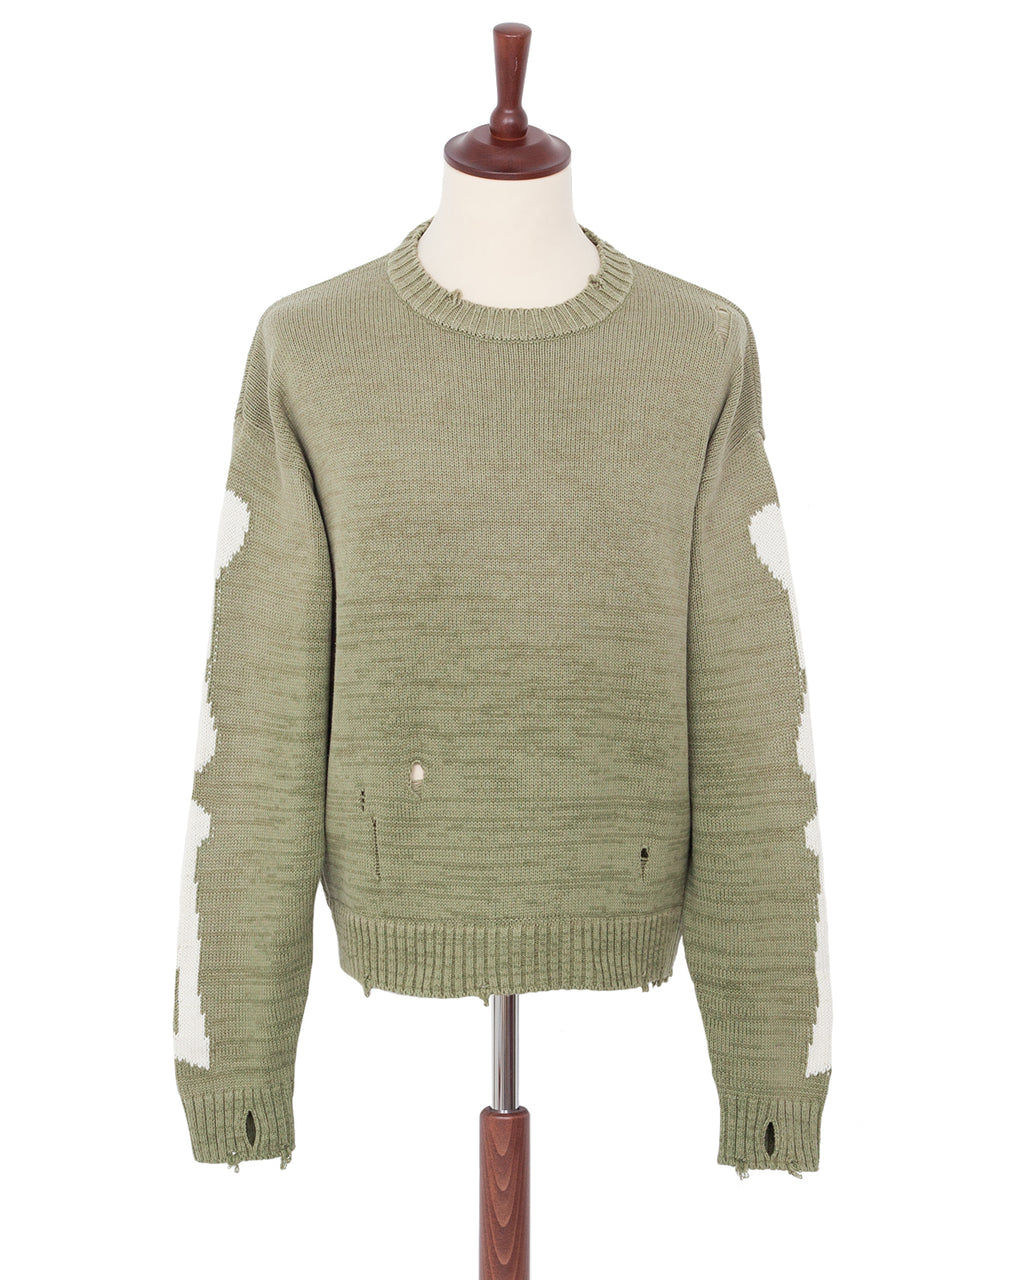 Kapital 5G Cotton Knit Bone Crew Sweater